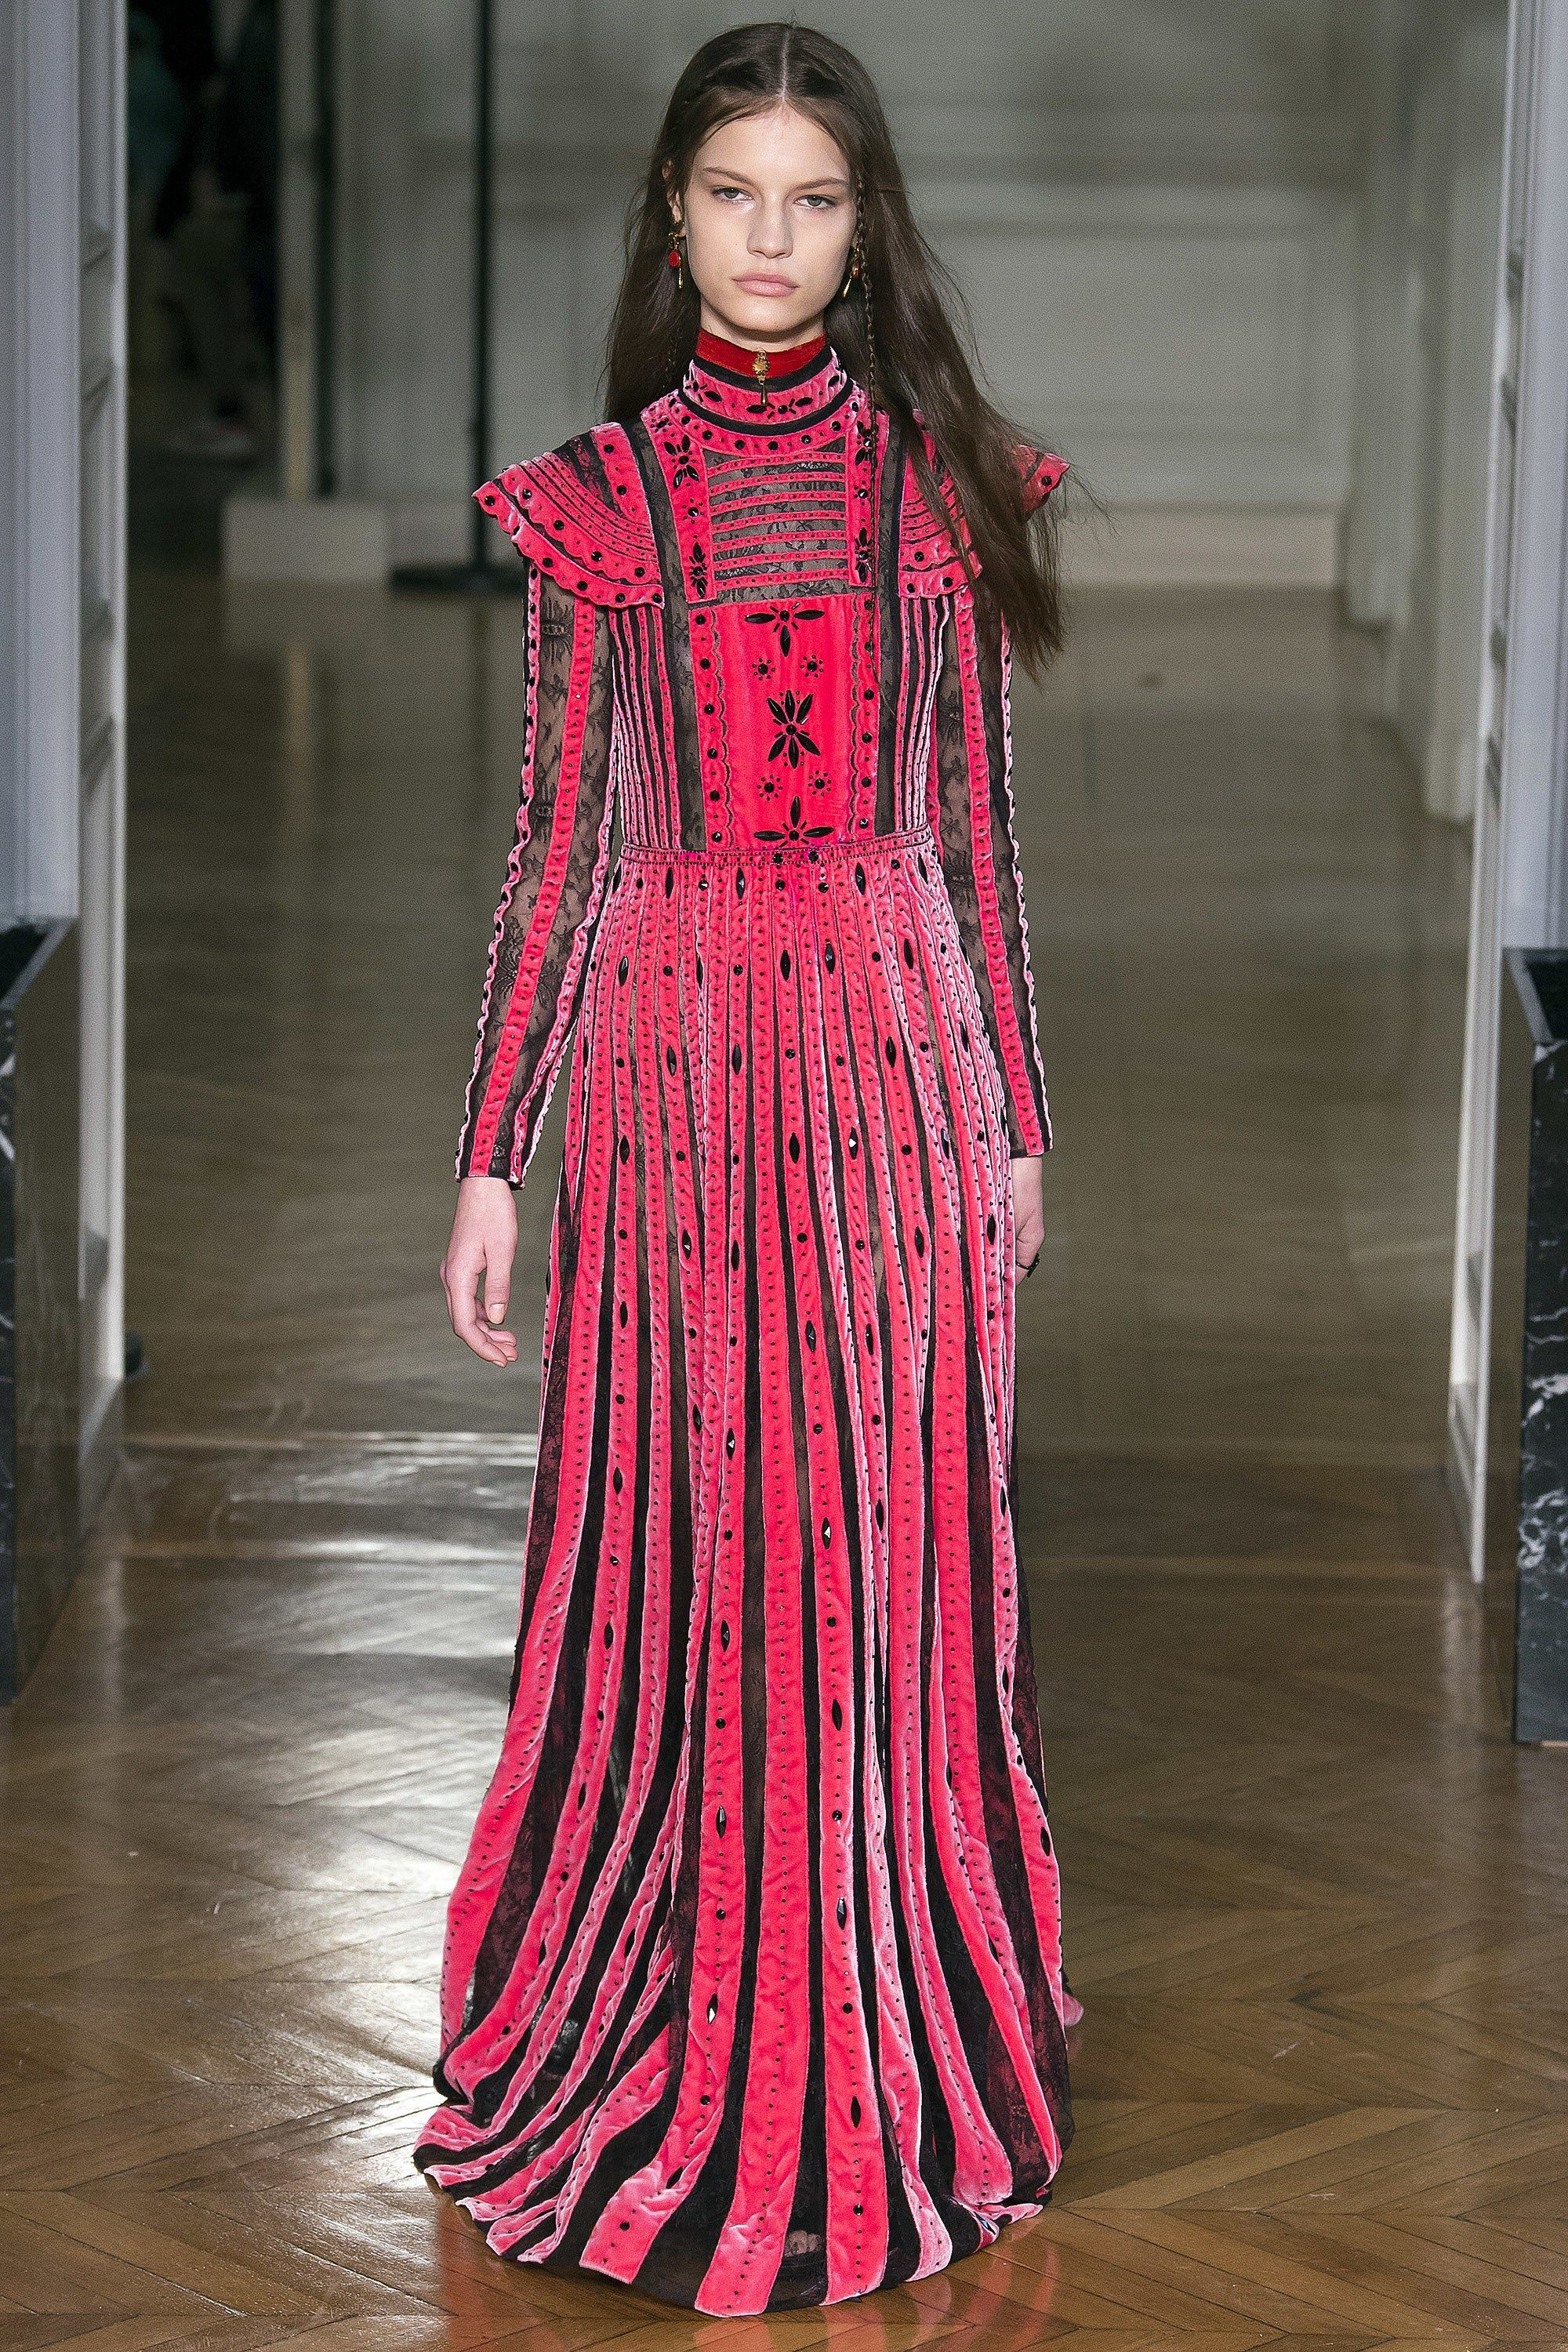 About valentino style dresses